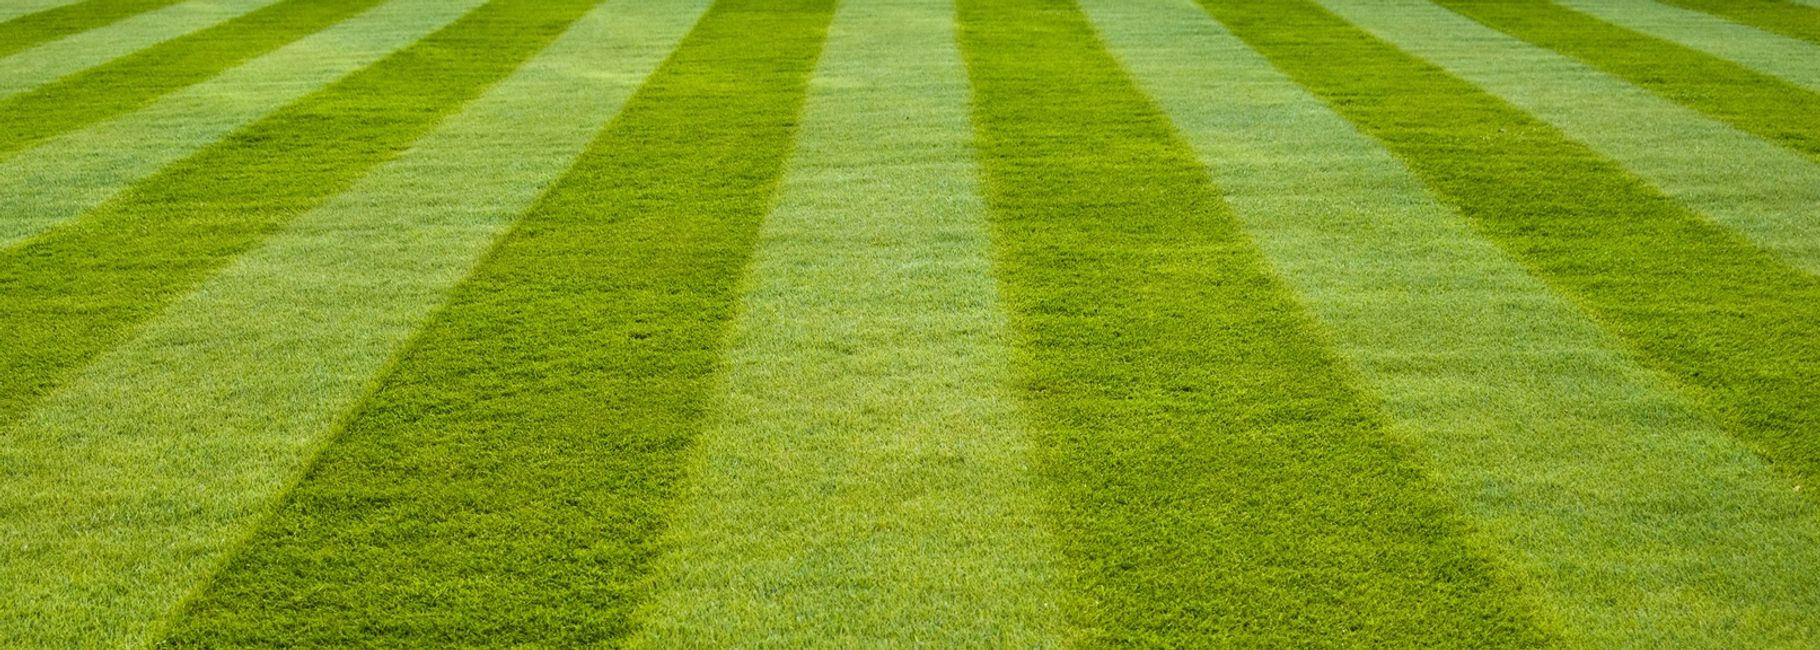 Lawn Maintenance, Lawn Mowing, Lawn Care, Yard, Grass Cutting